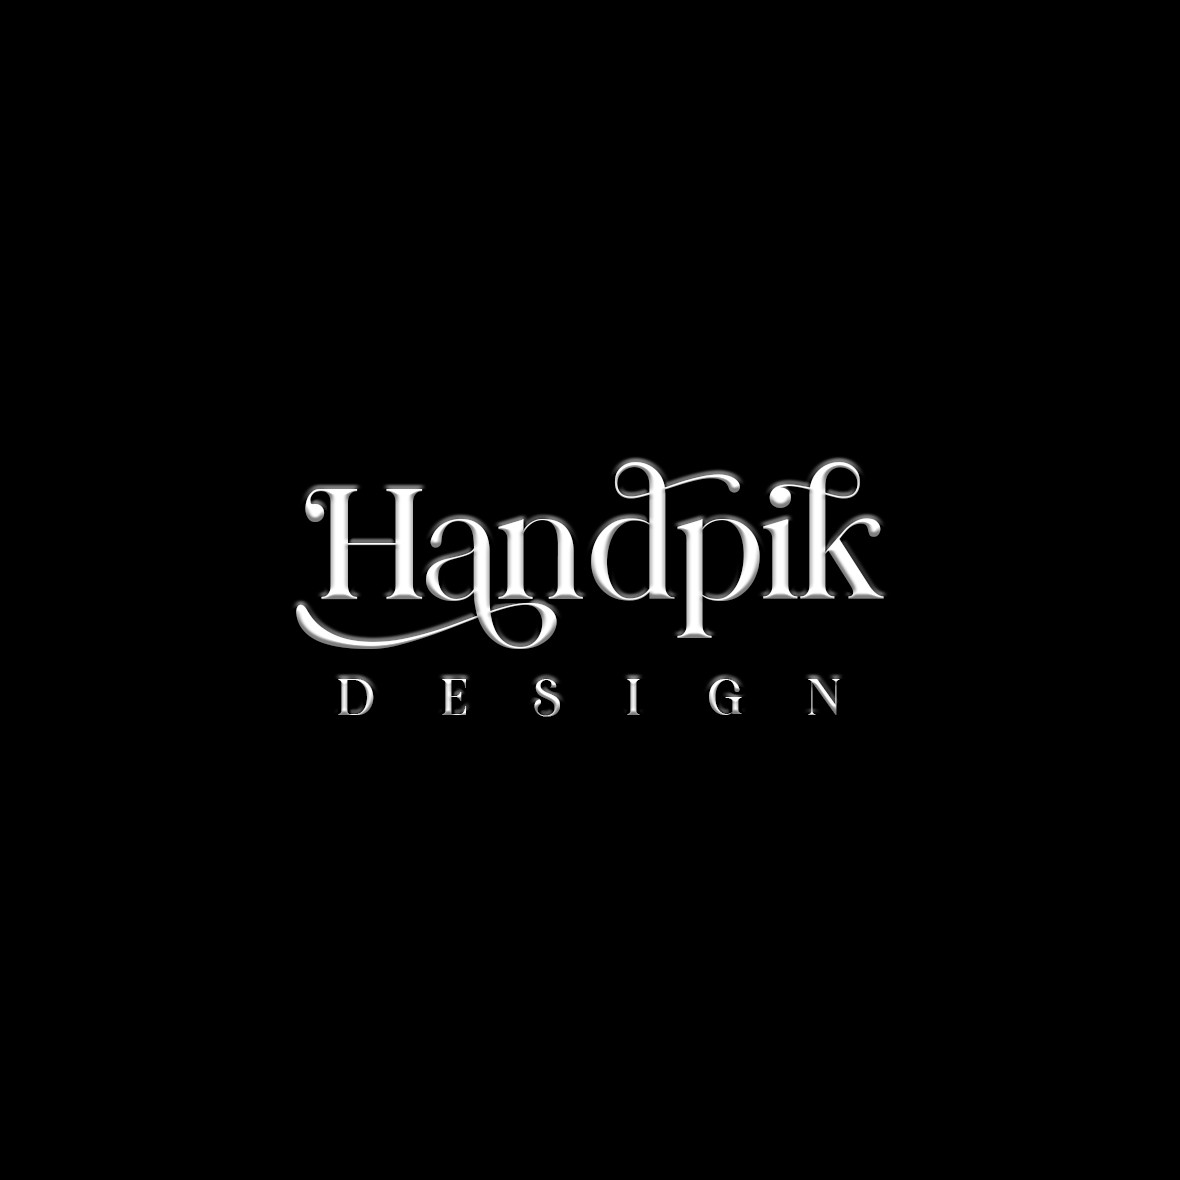 handpik's profile picture